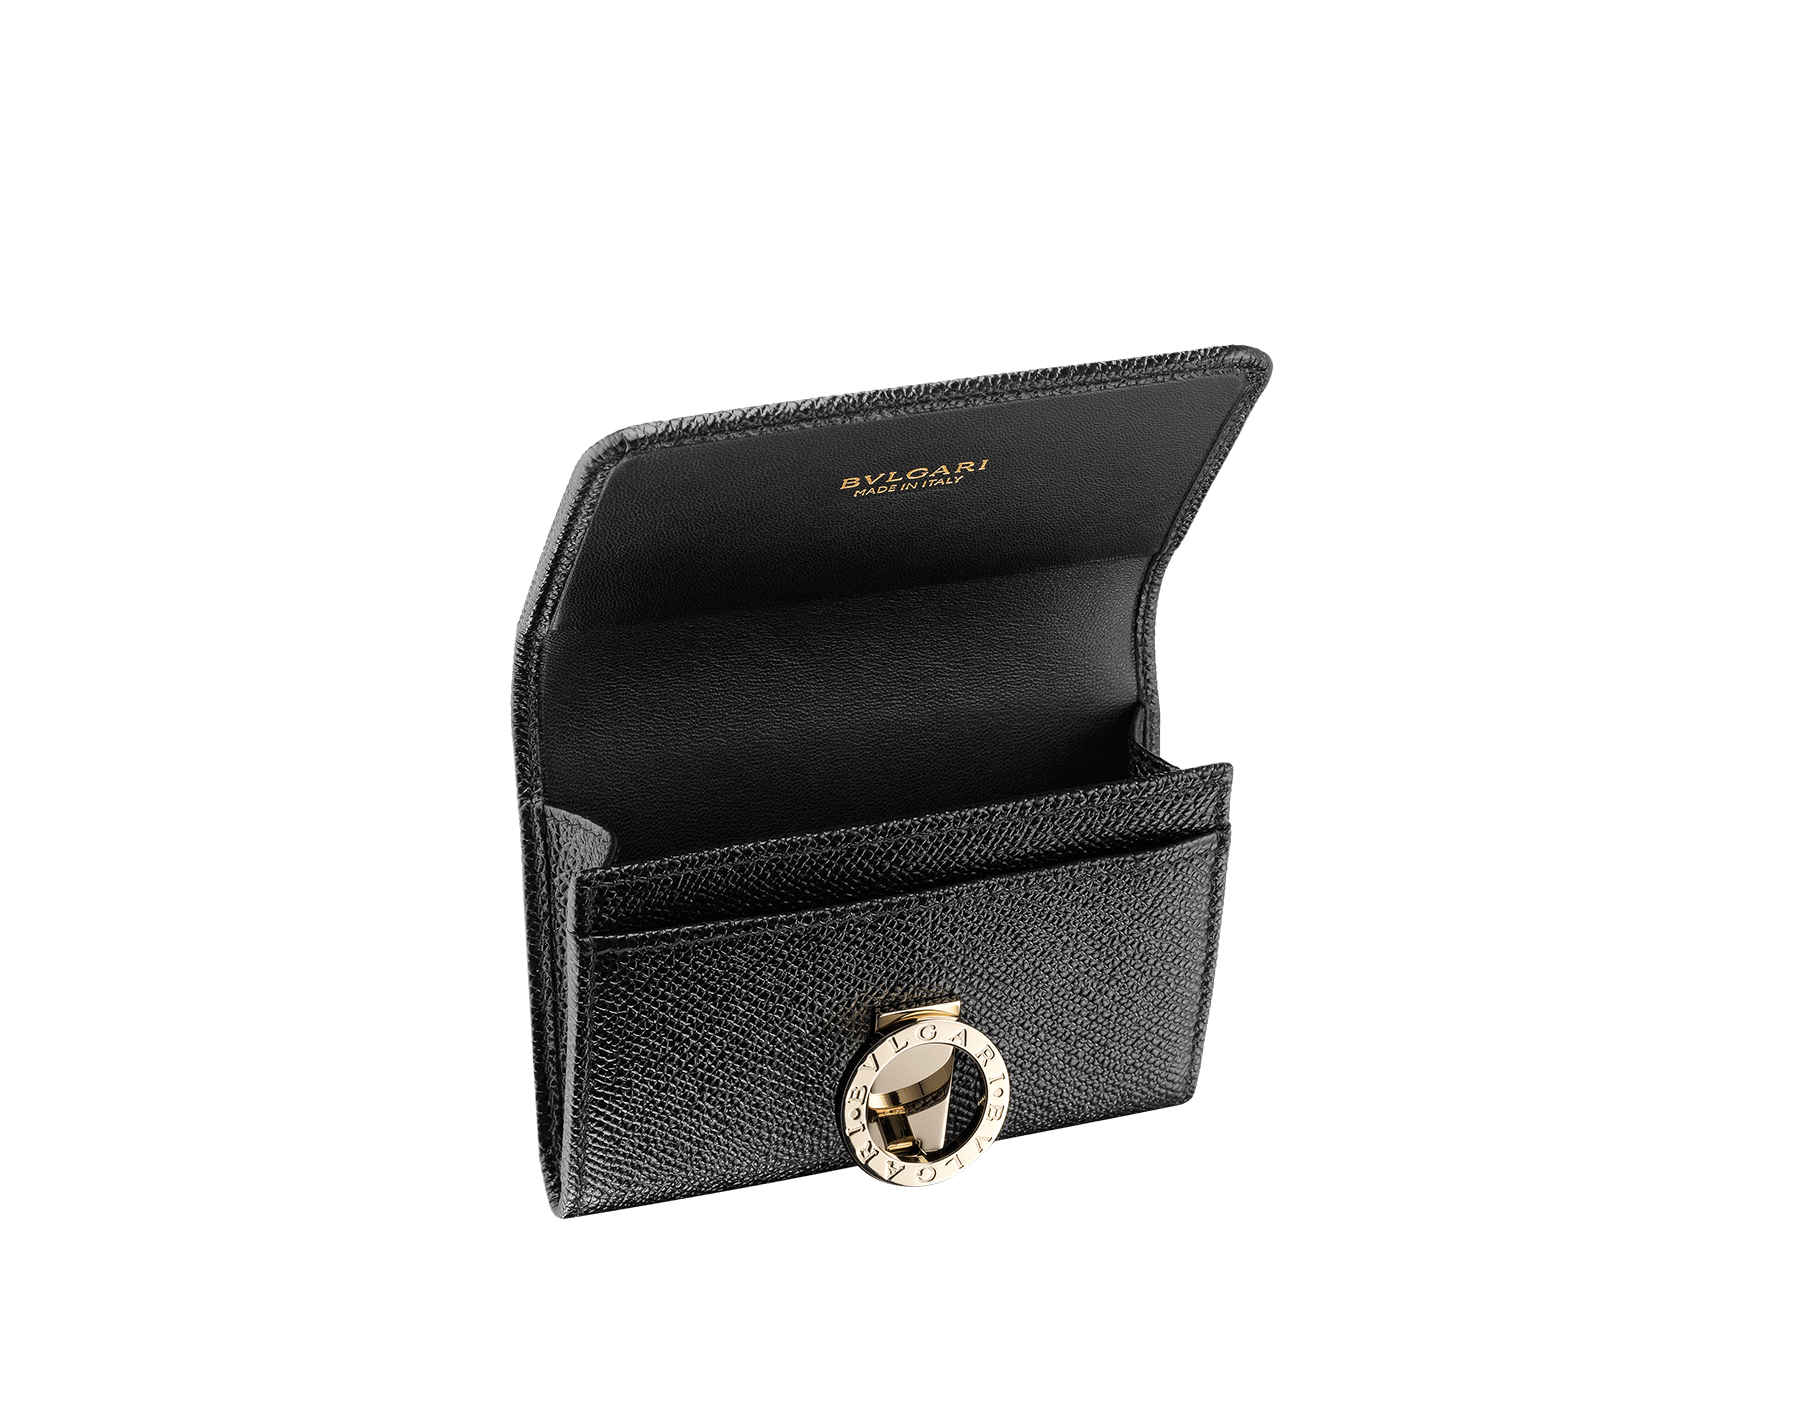 Business card holder in black bright grain calf leather and black nappa lining. Iconic brass light gold plated clip featuring the Bulgari Bulgari motif. 280520 image 2